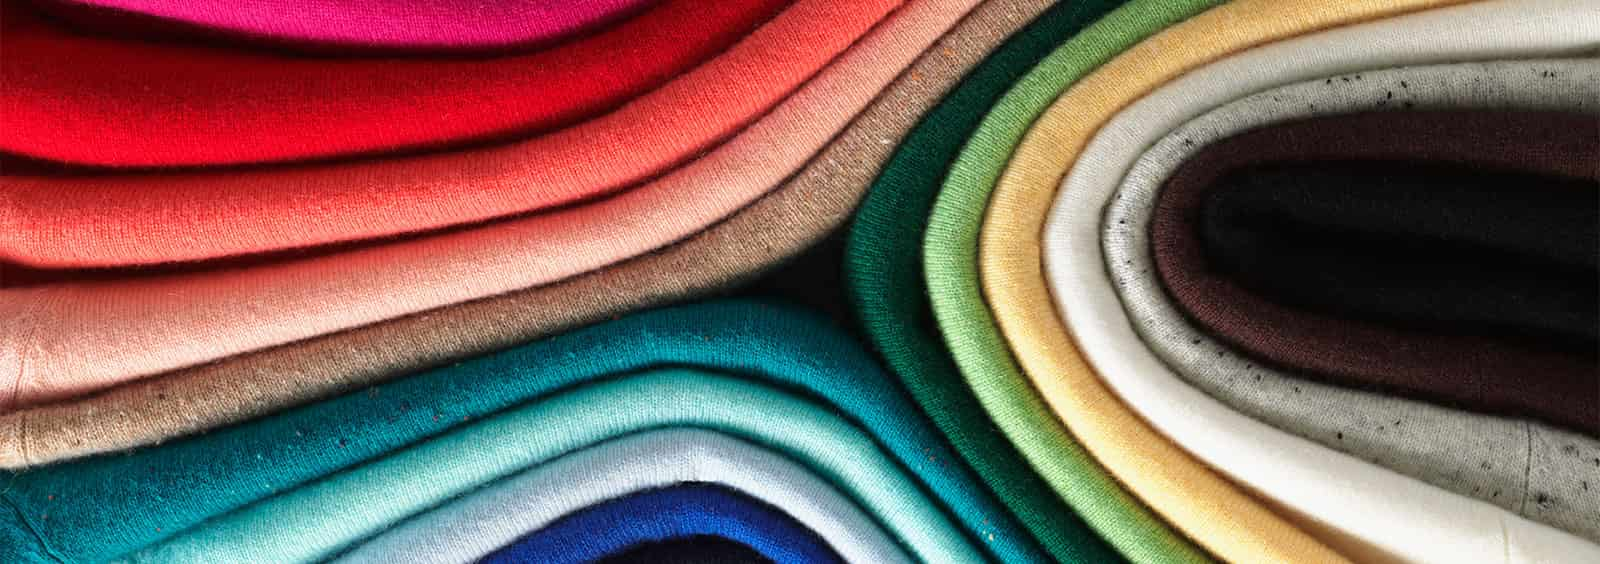 Tips on Layering Cashmere Sweaters for Women